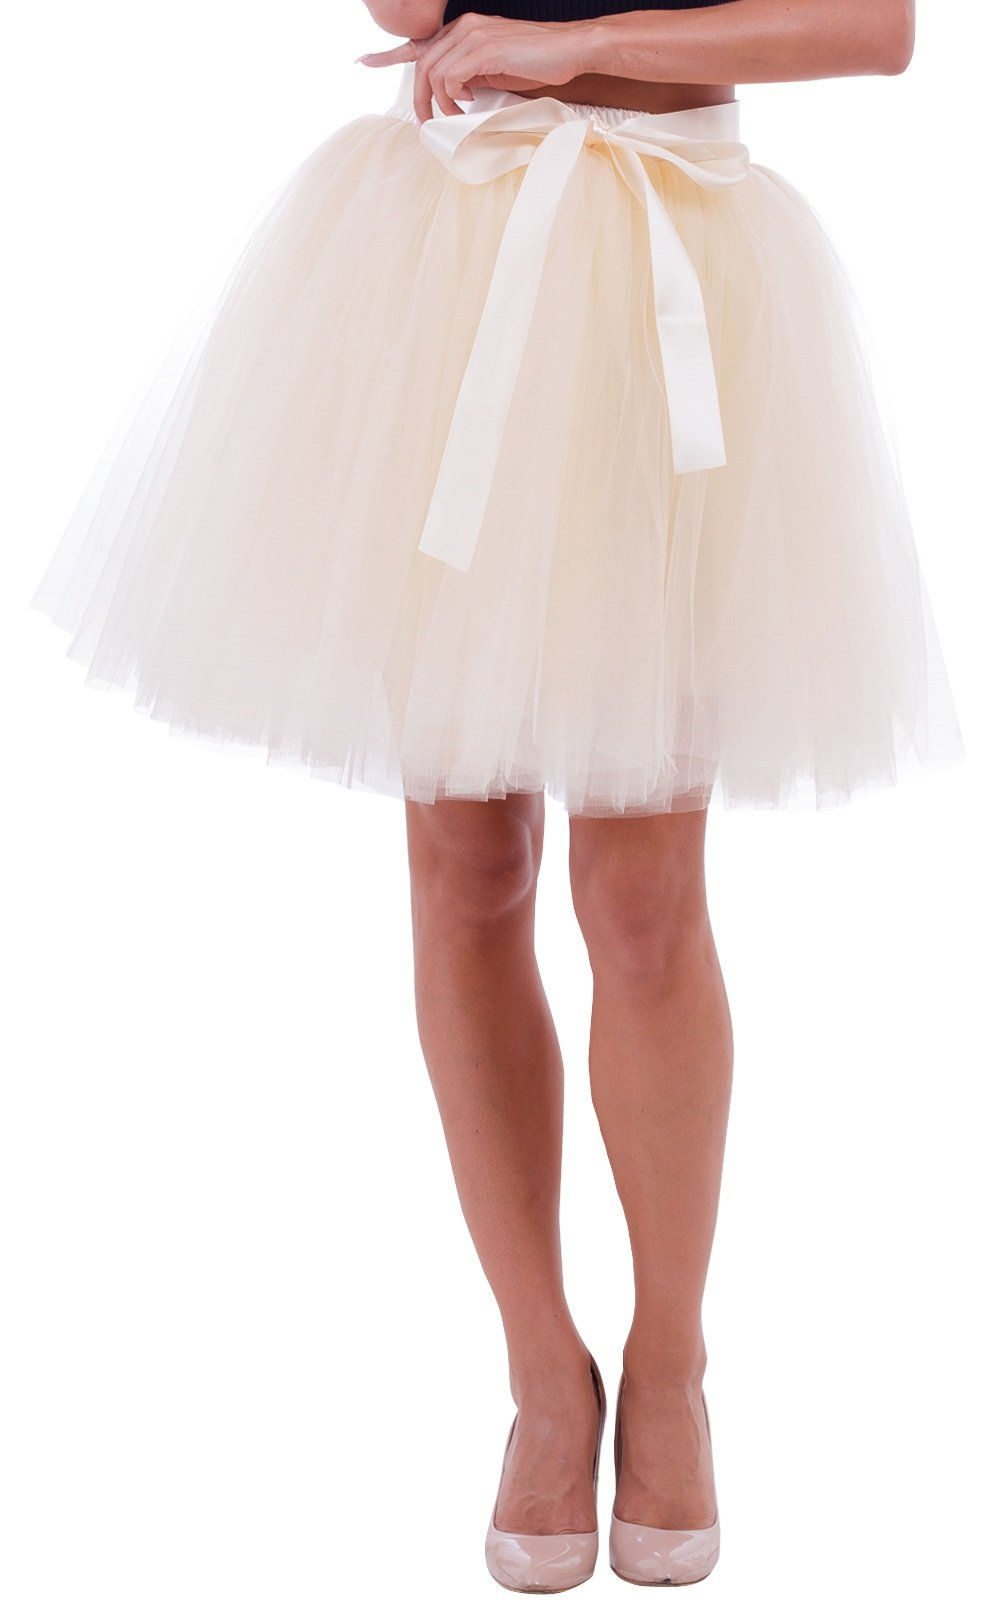 Duraplast Women's Above Knee Skirt Tutu Petticoat High Waist Tulle Ivory by Duraplast